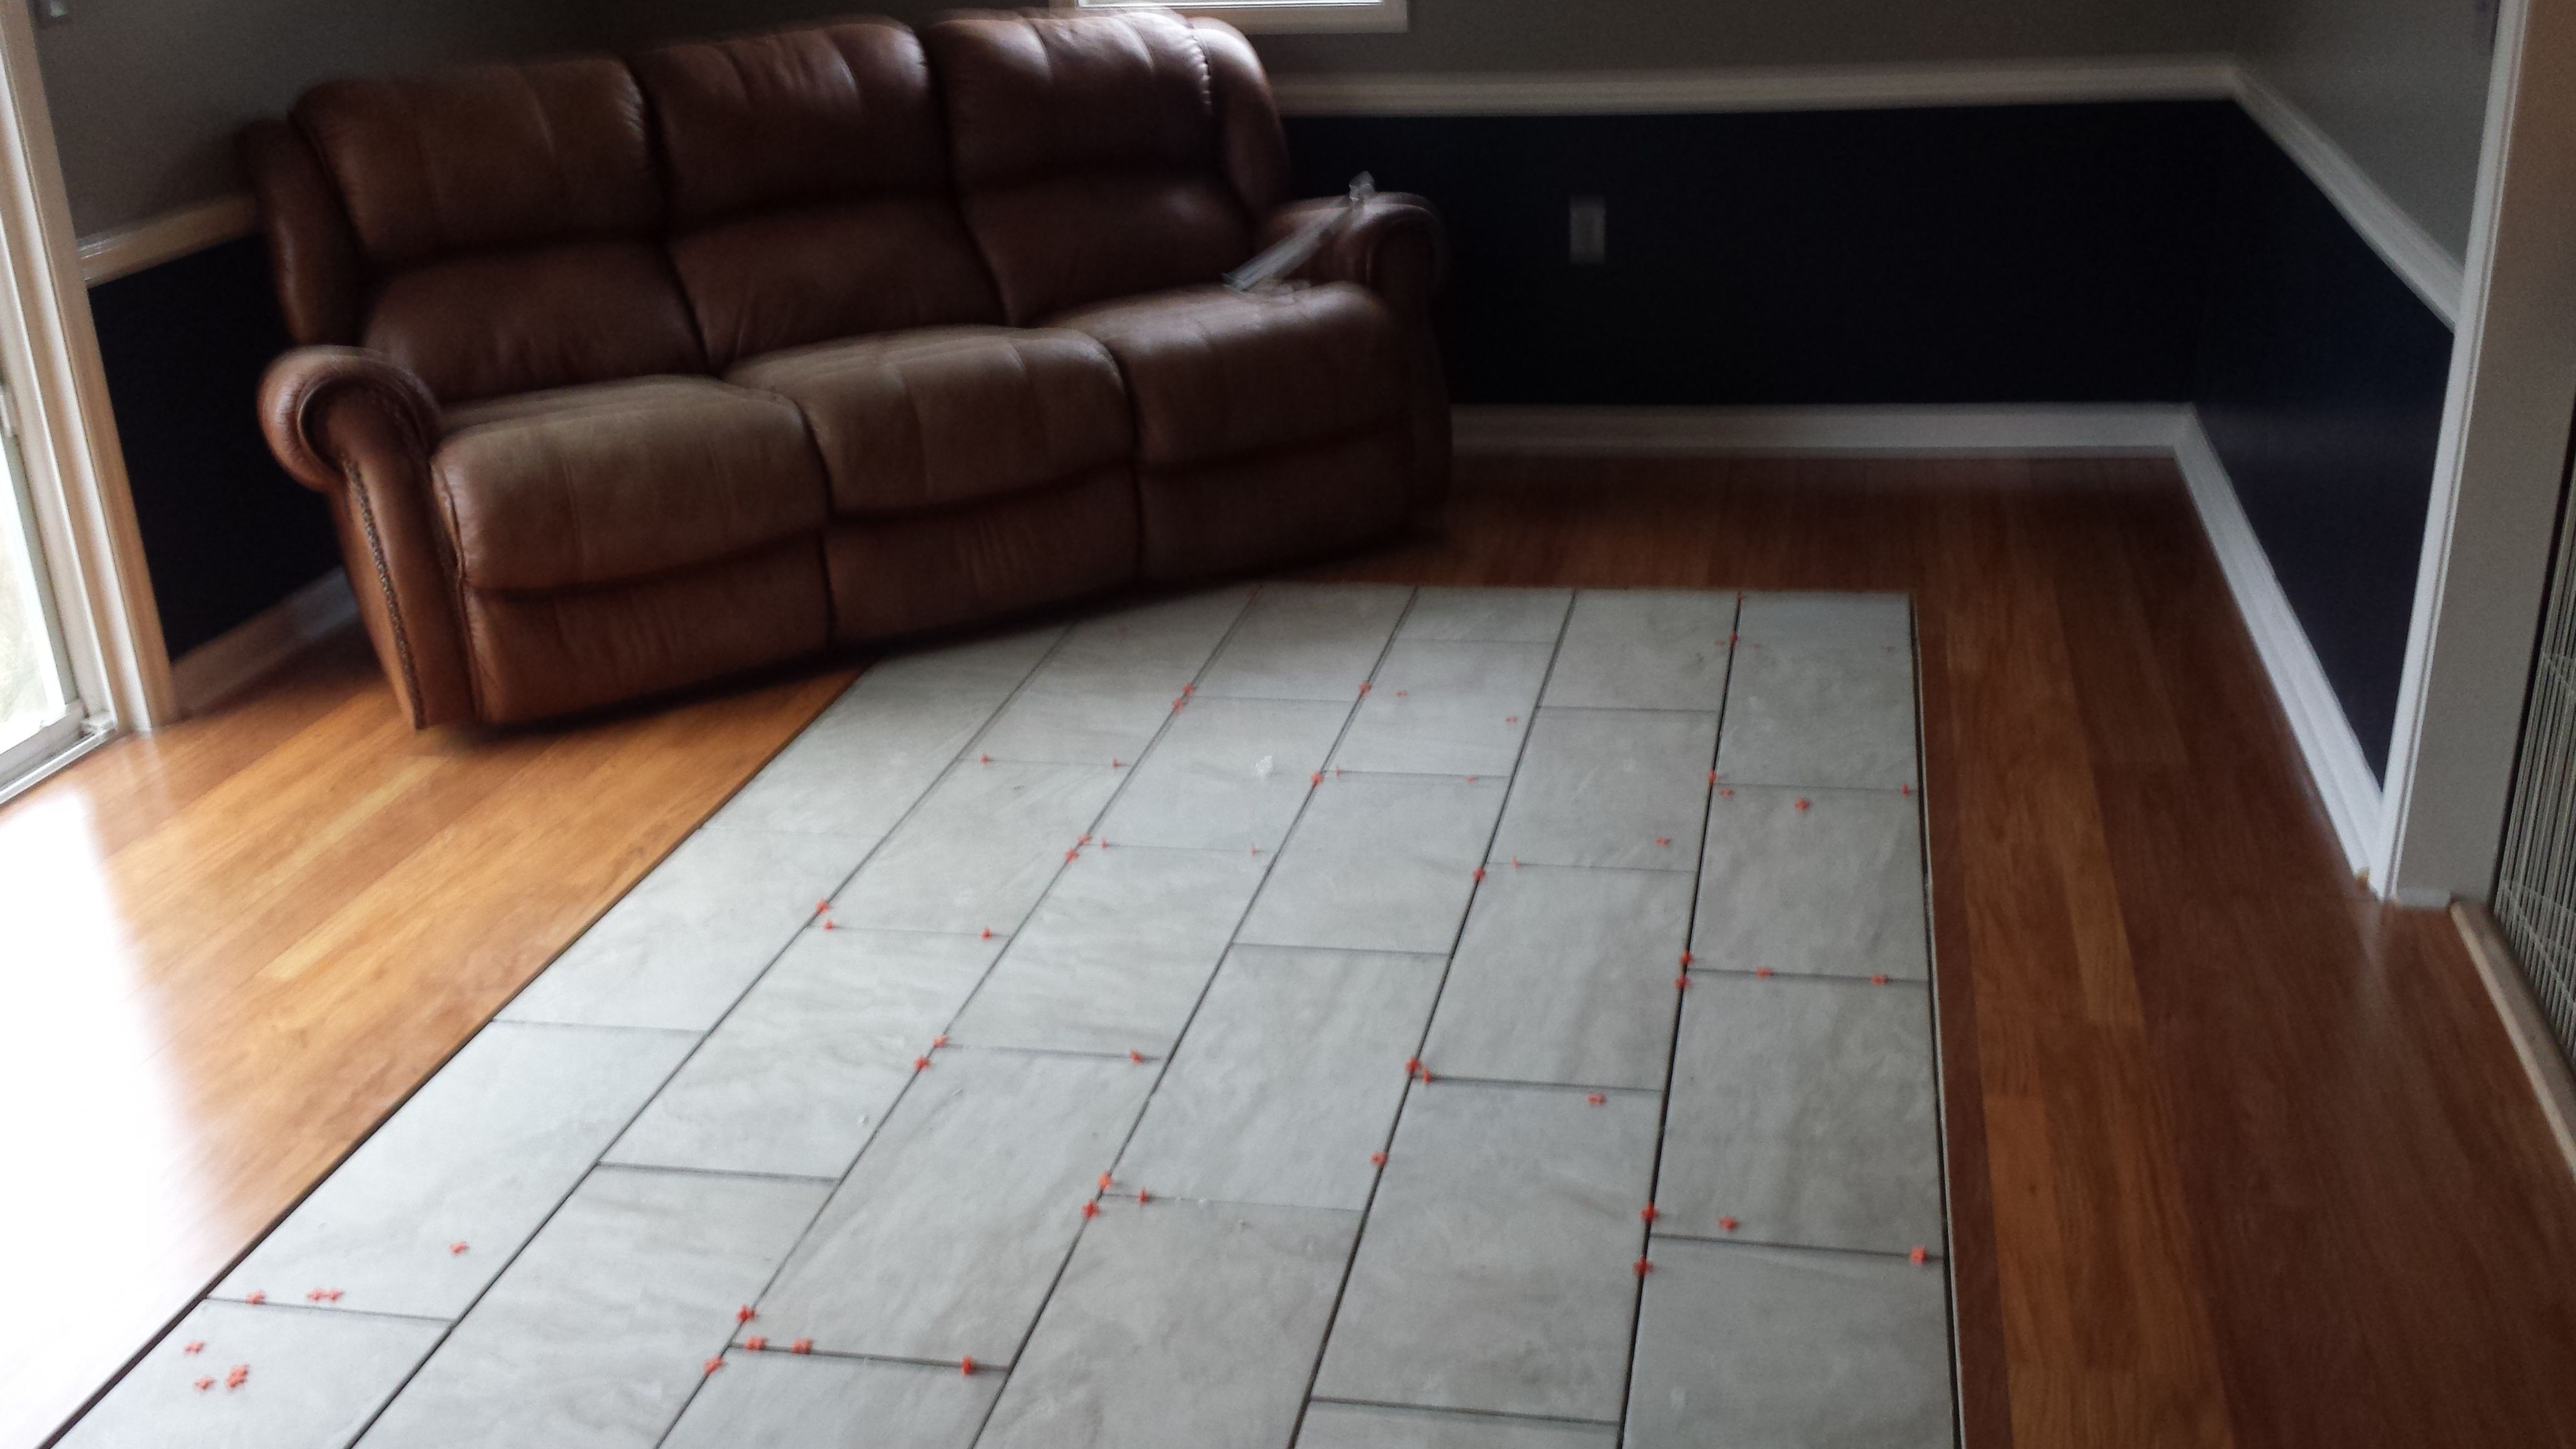 Wood Flooring With Tile Inset